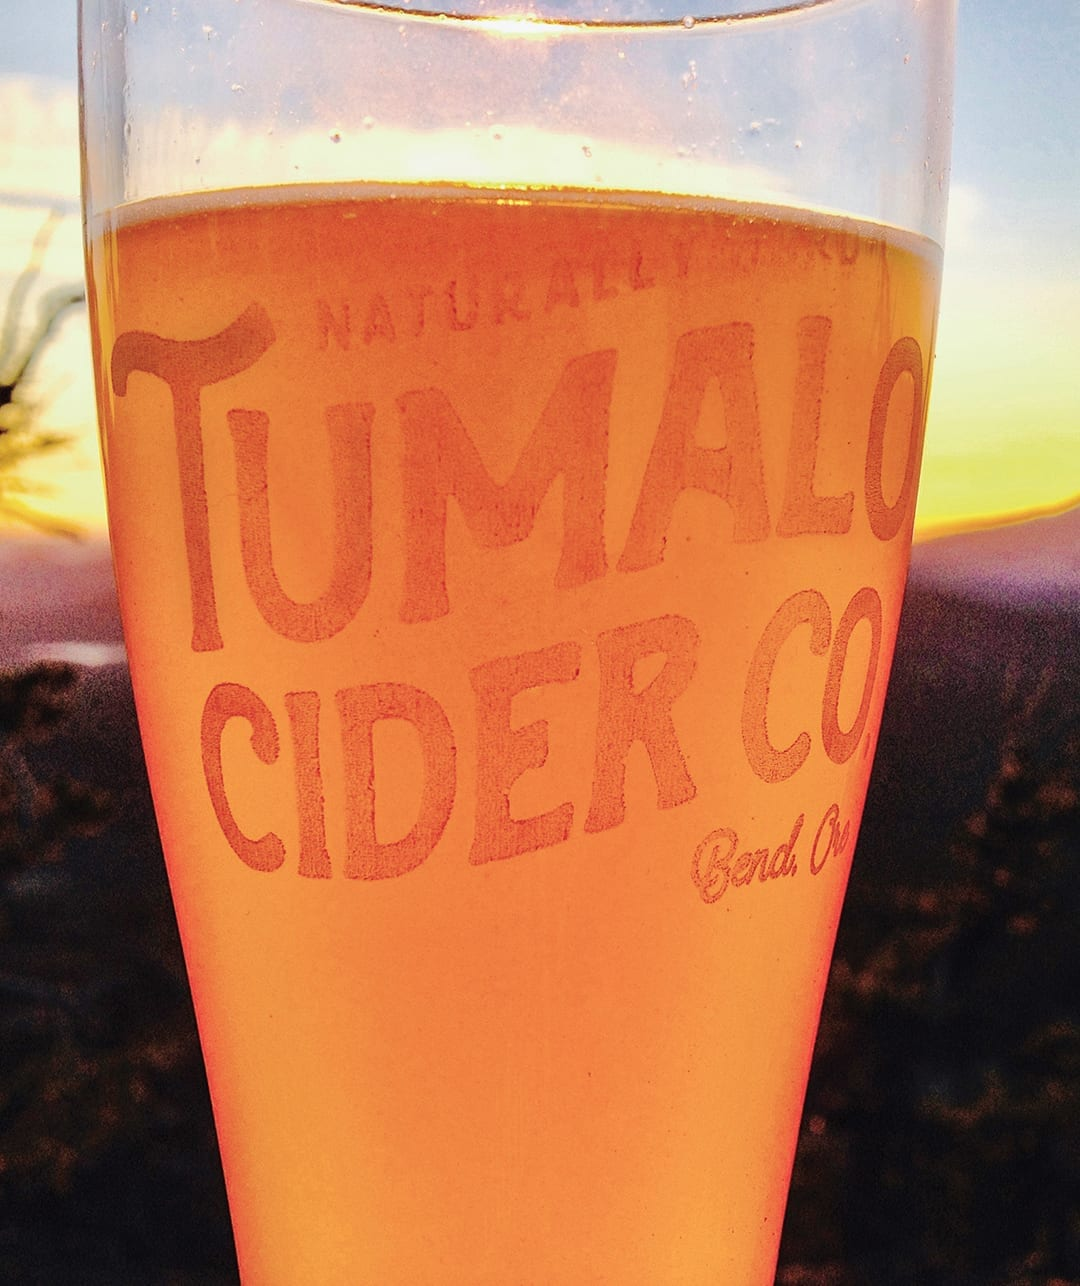 Tumalo Cider Company in Bend, Oregon